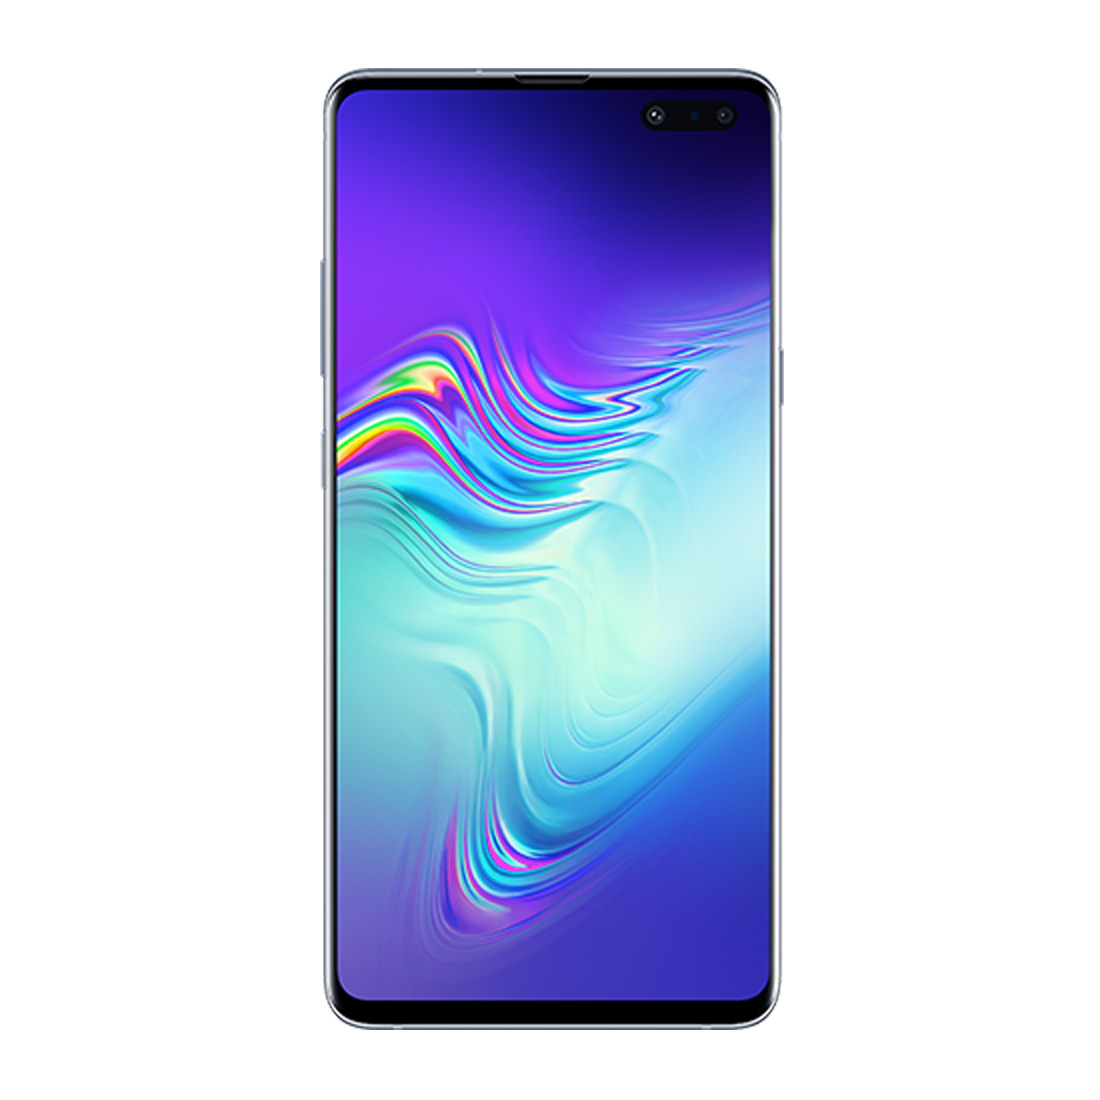 Samsung Galaxy S10 (5G, 256GB/8GB, Tel) - Majestic Black